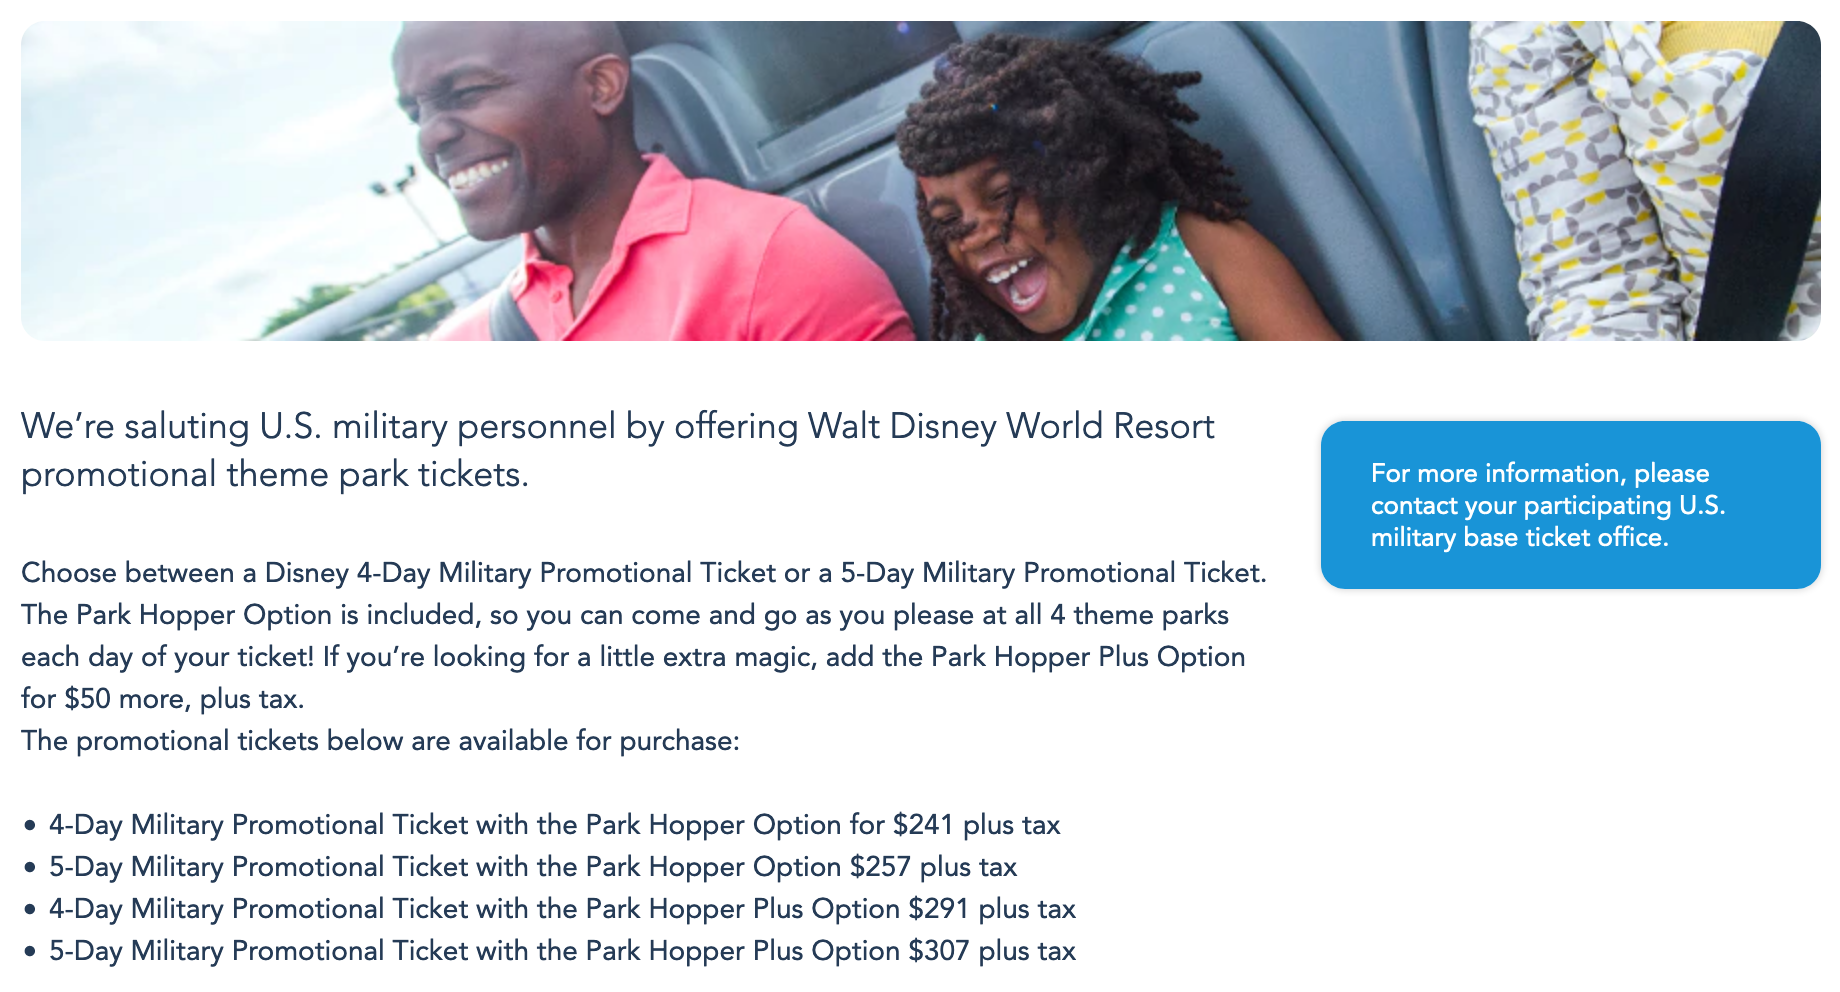 Disney World Military Veteran Discounts